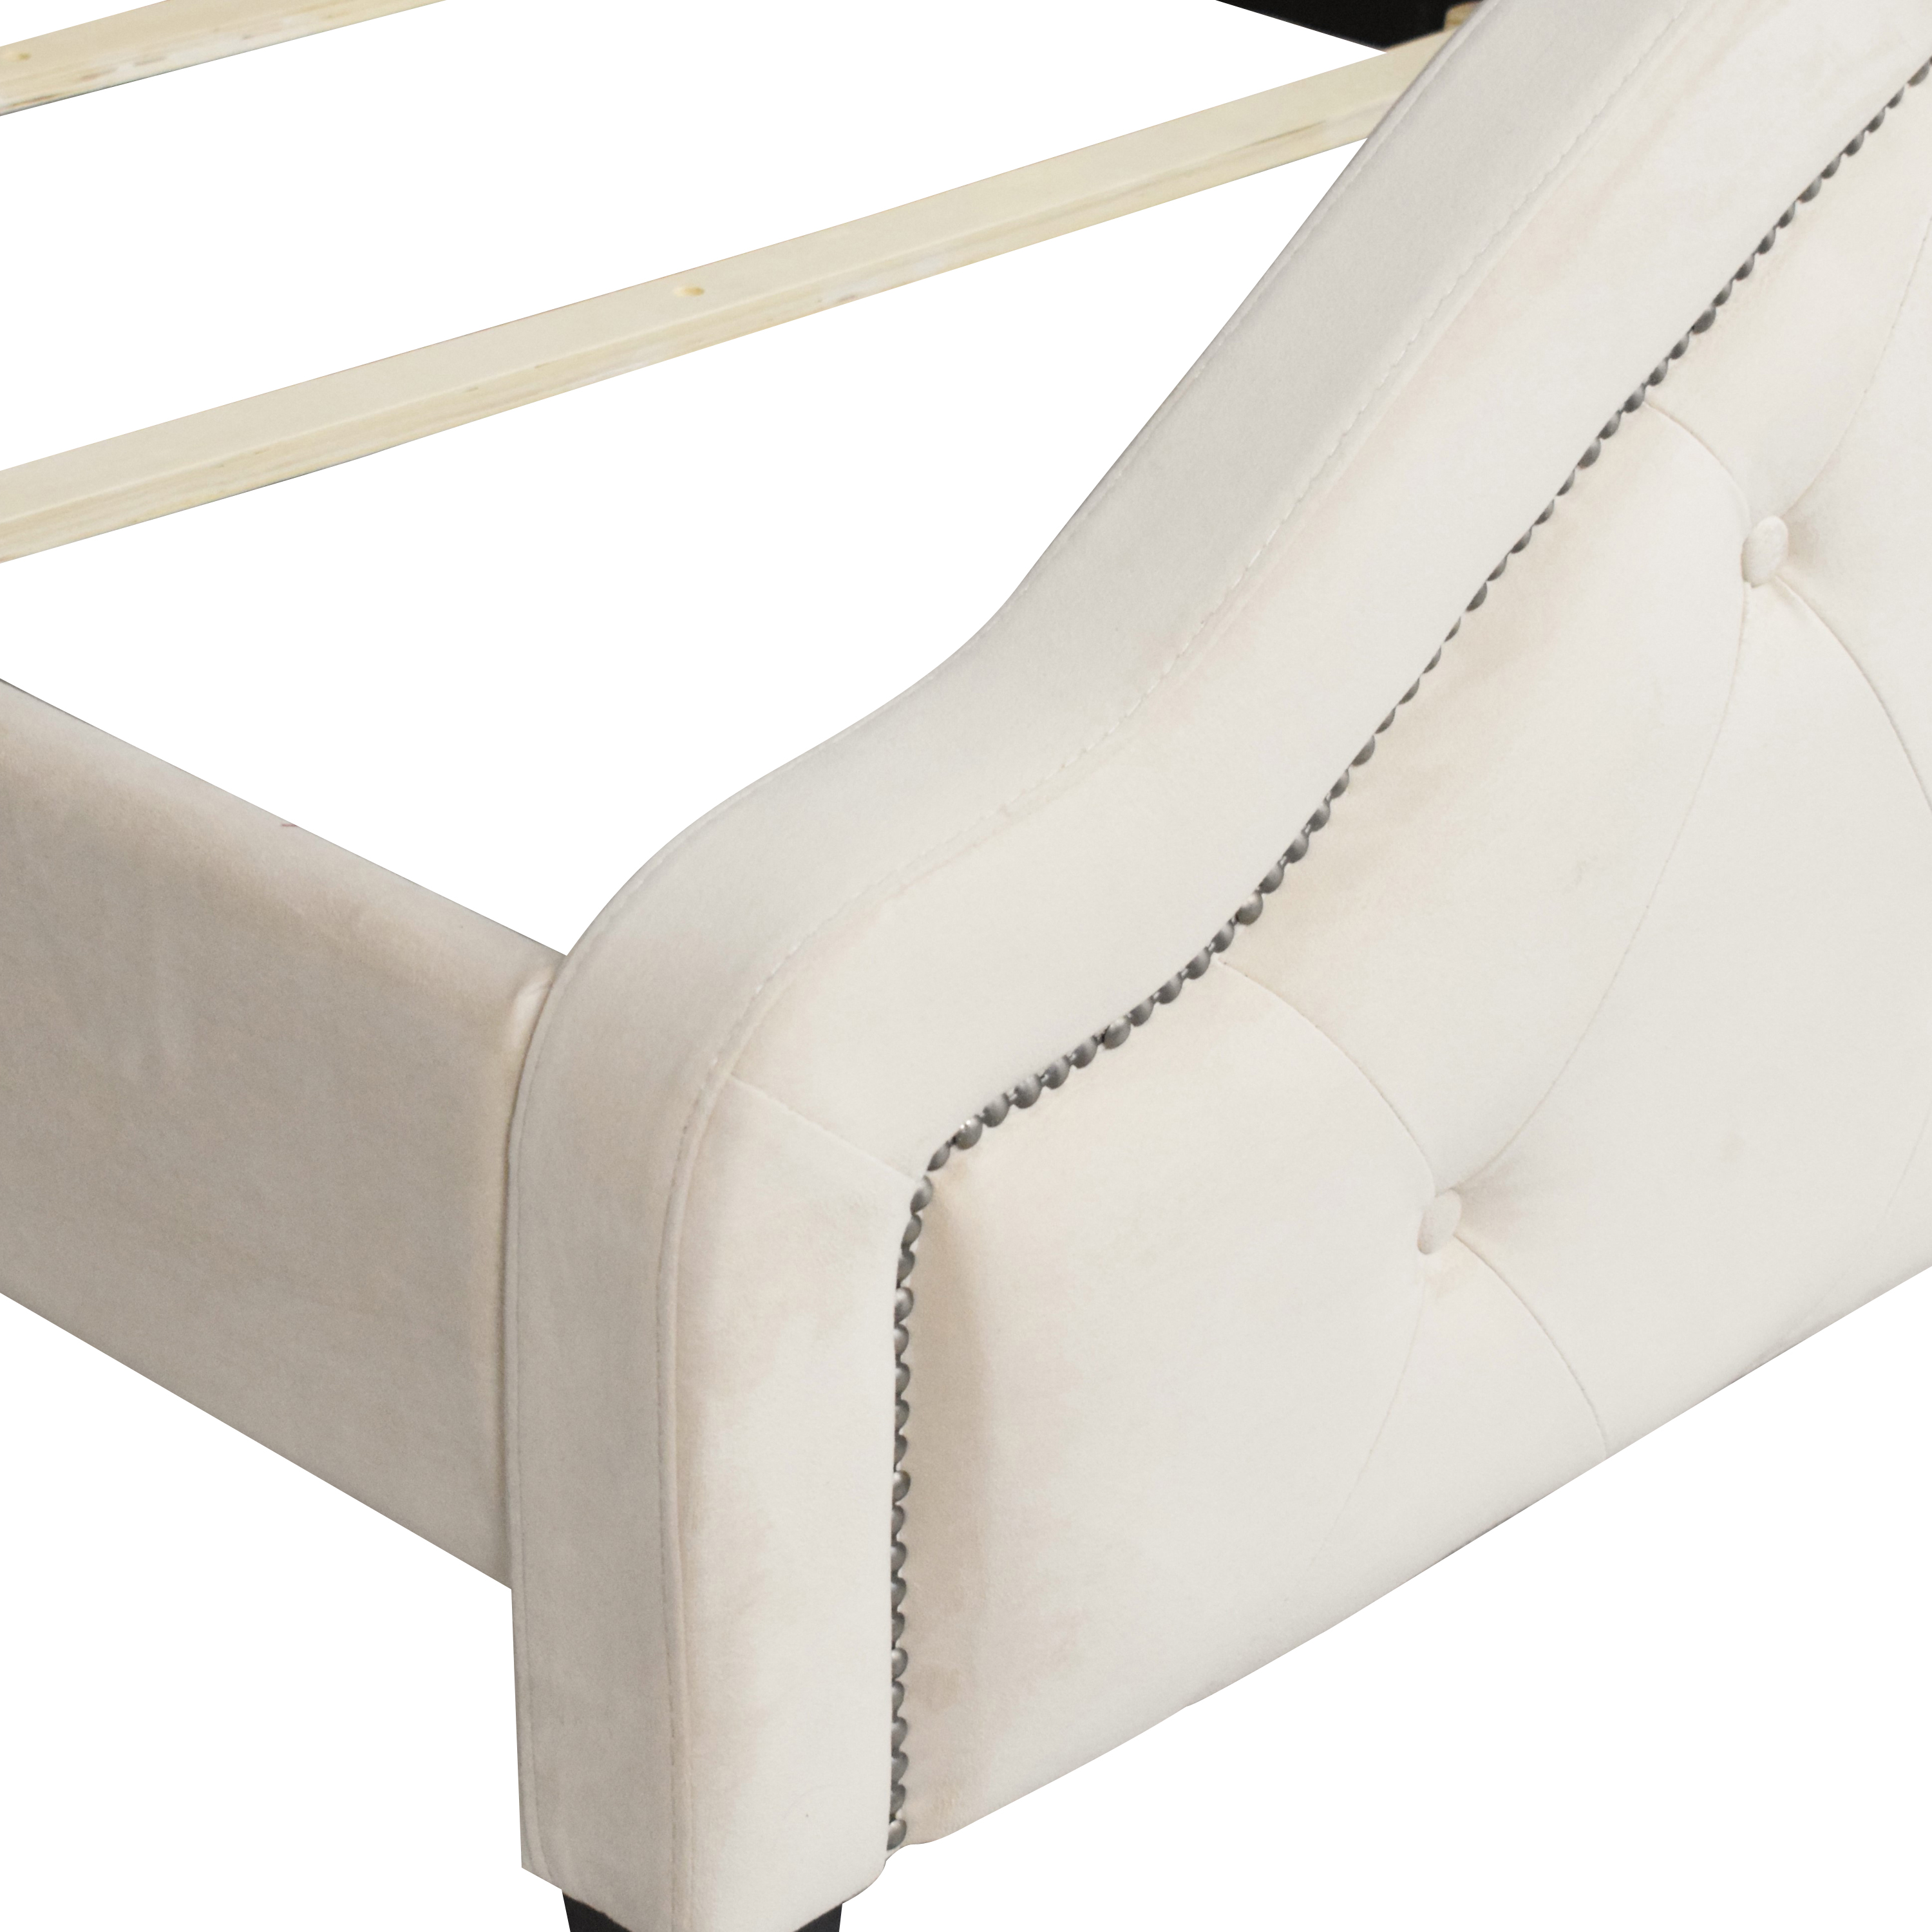 shop Raymour & Flanigan Bowman Tufted Full Bed Raymour & Flanigan Beds